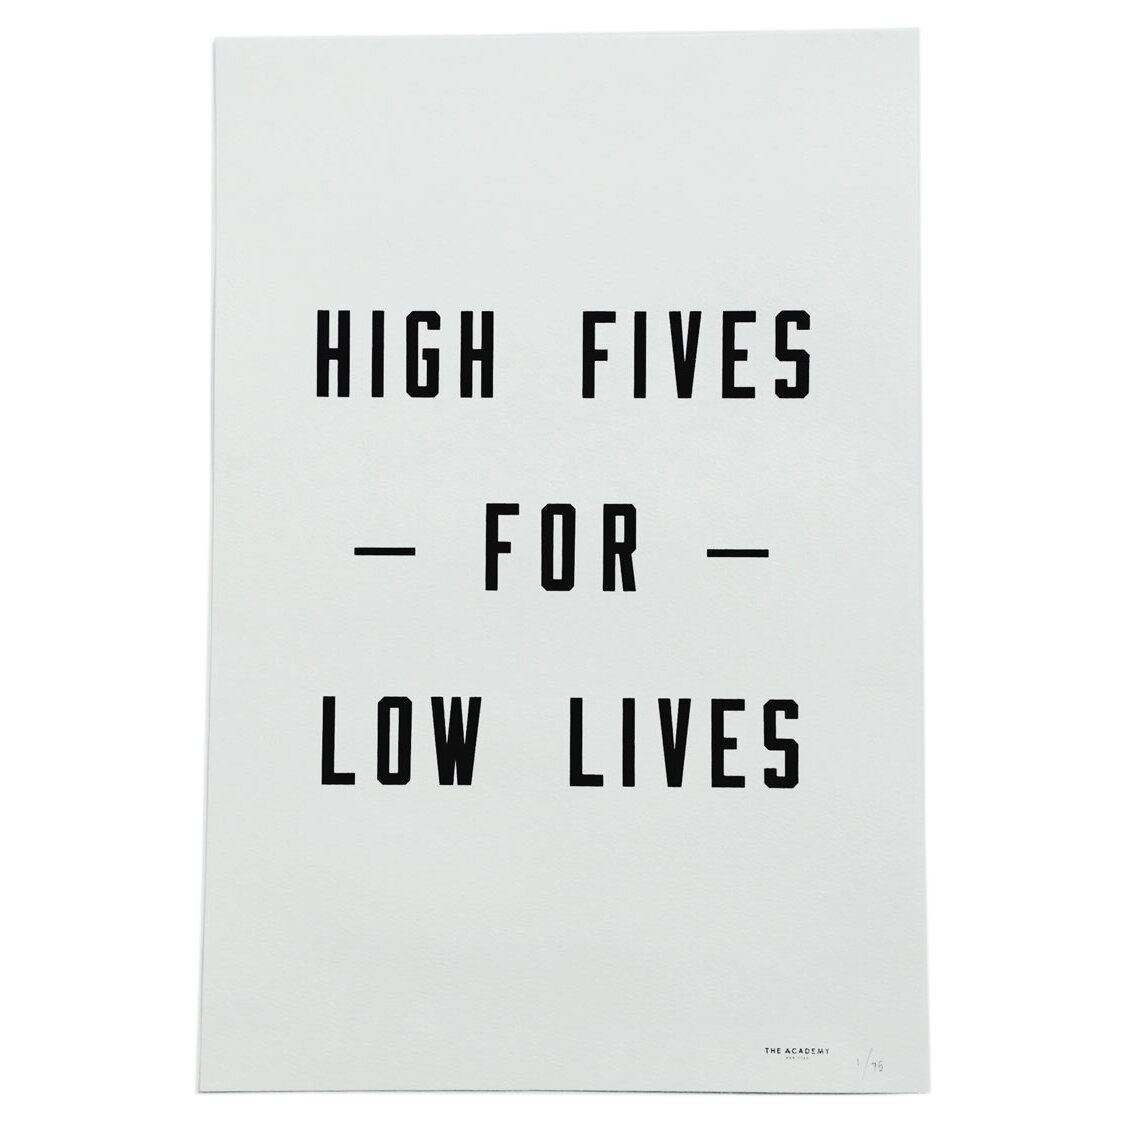 High_Fives_For_Low_Lives-Print-The_Academy_NY-cdr.jpg